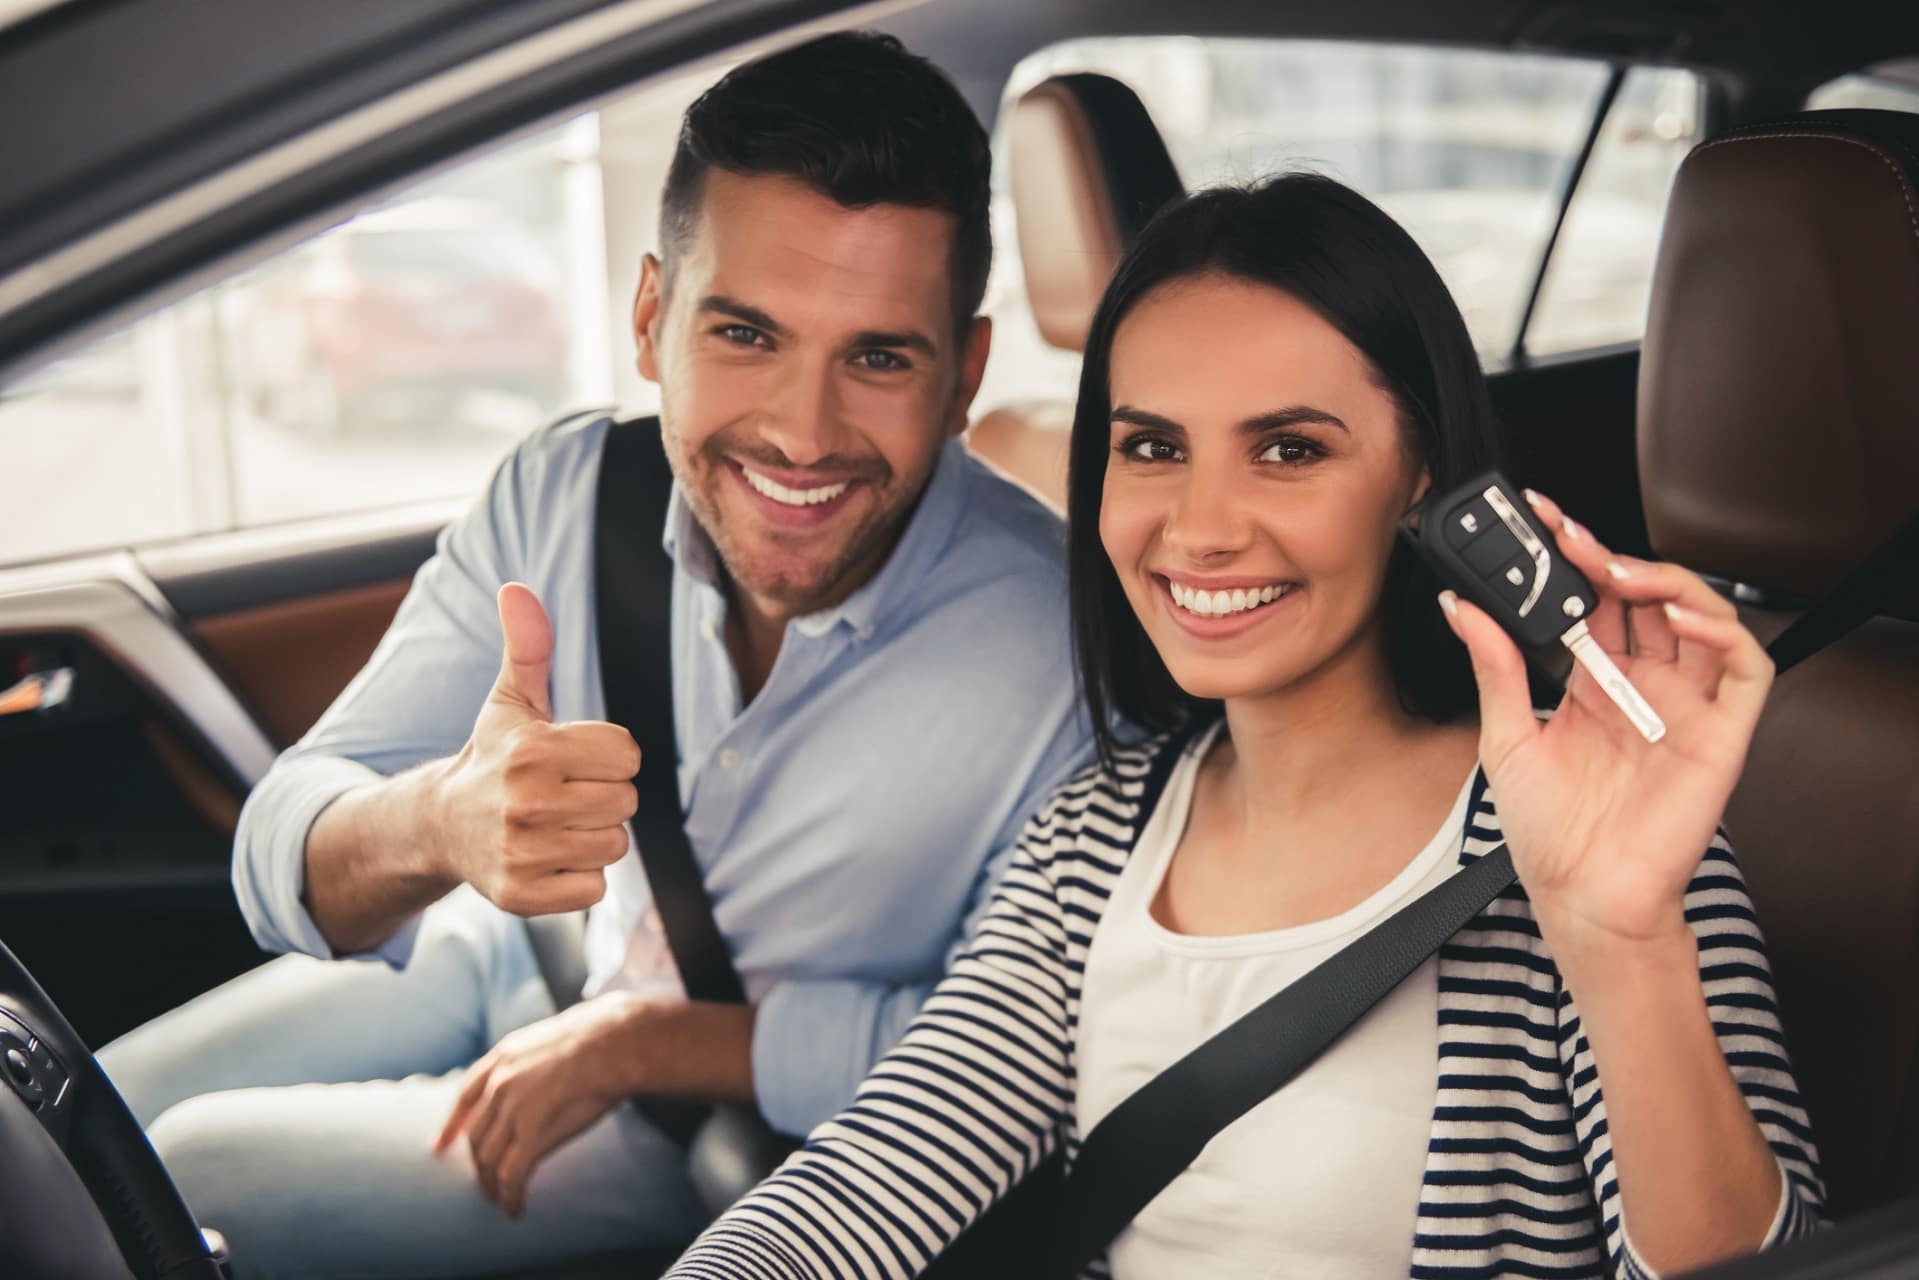 Cars to Lease in Sioux City, IA